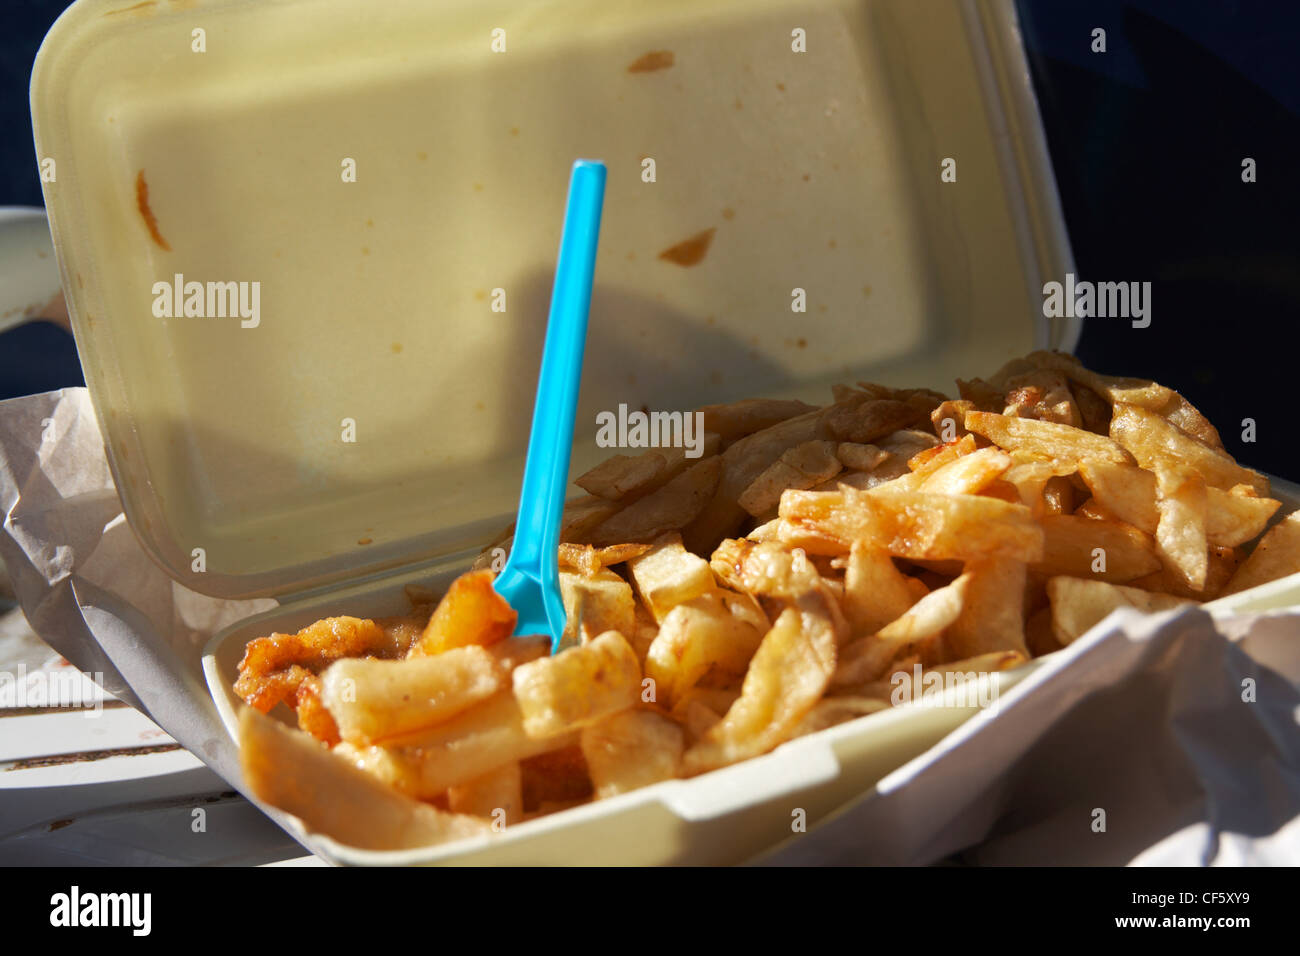 A close up of fish and chips in a tray on Morecambe sea front. - Stock Image